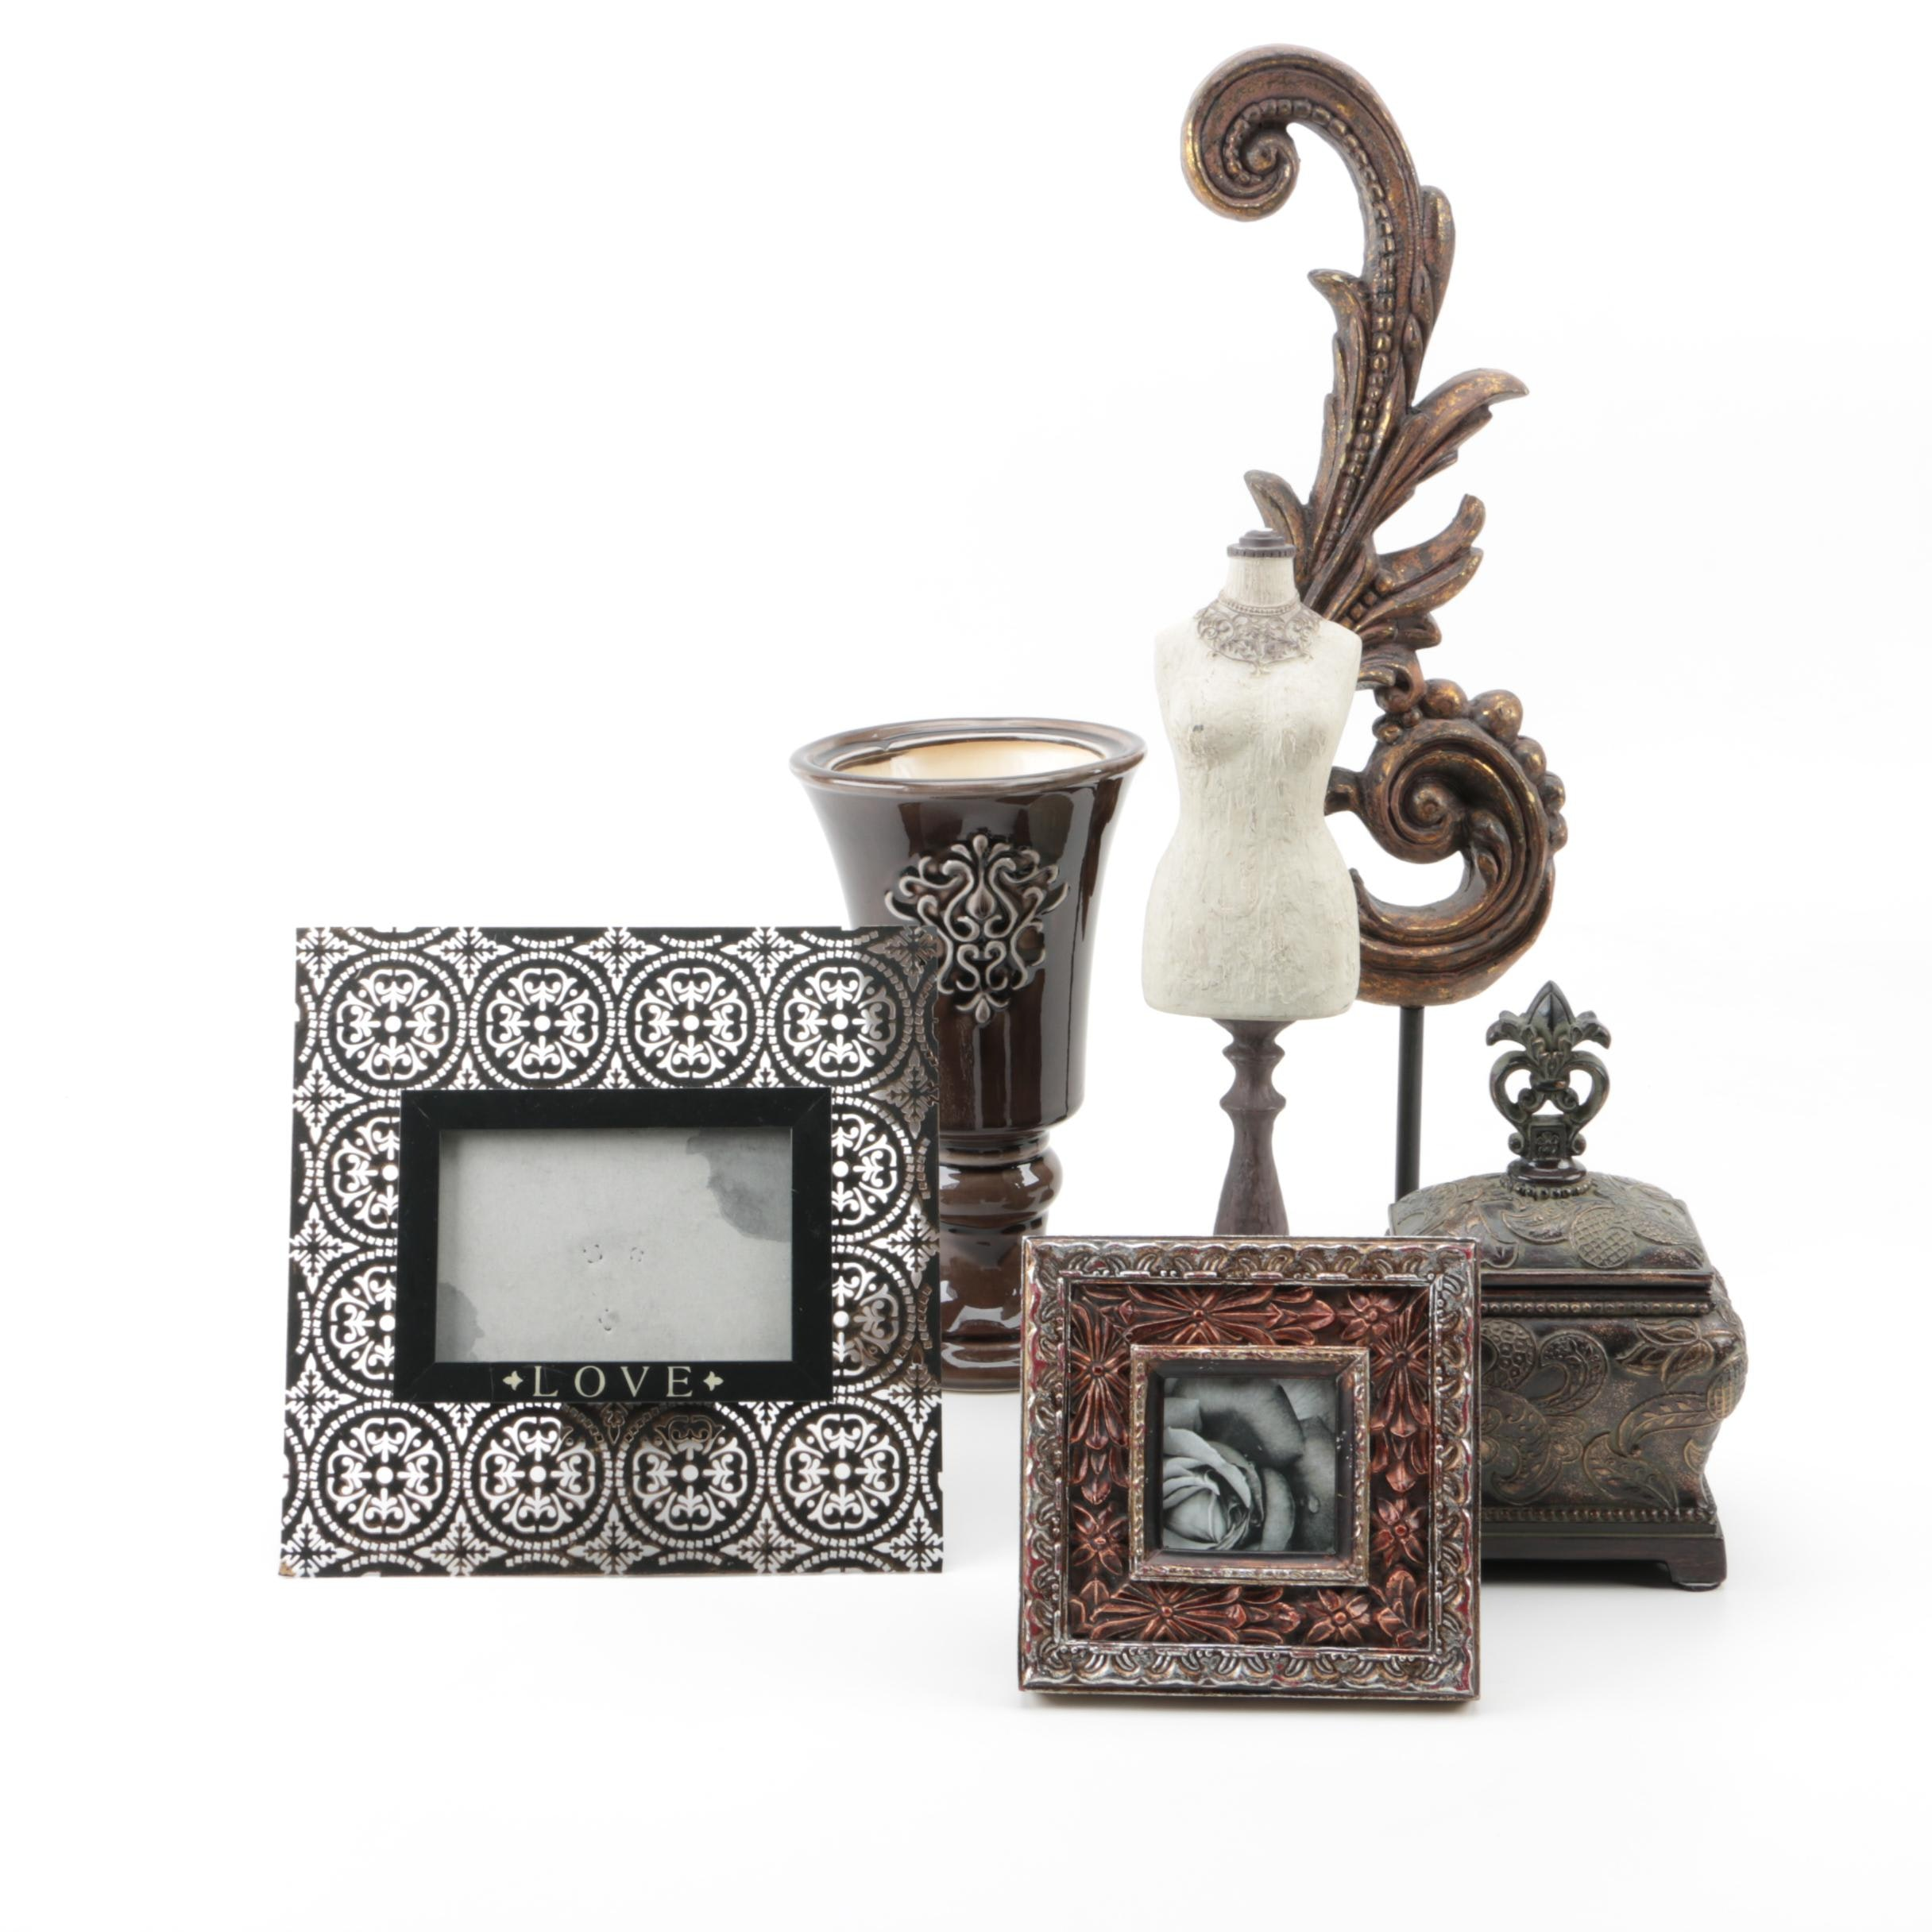 Ornate Frames and Decorative Items